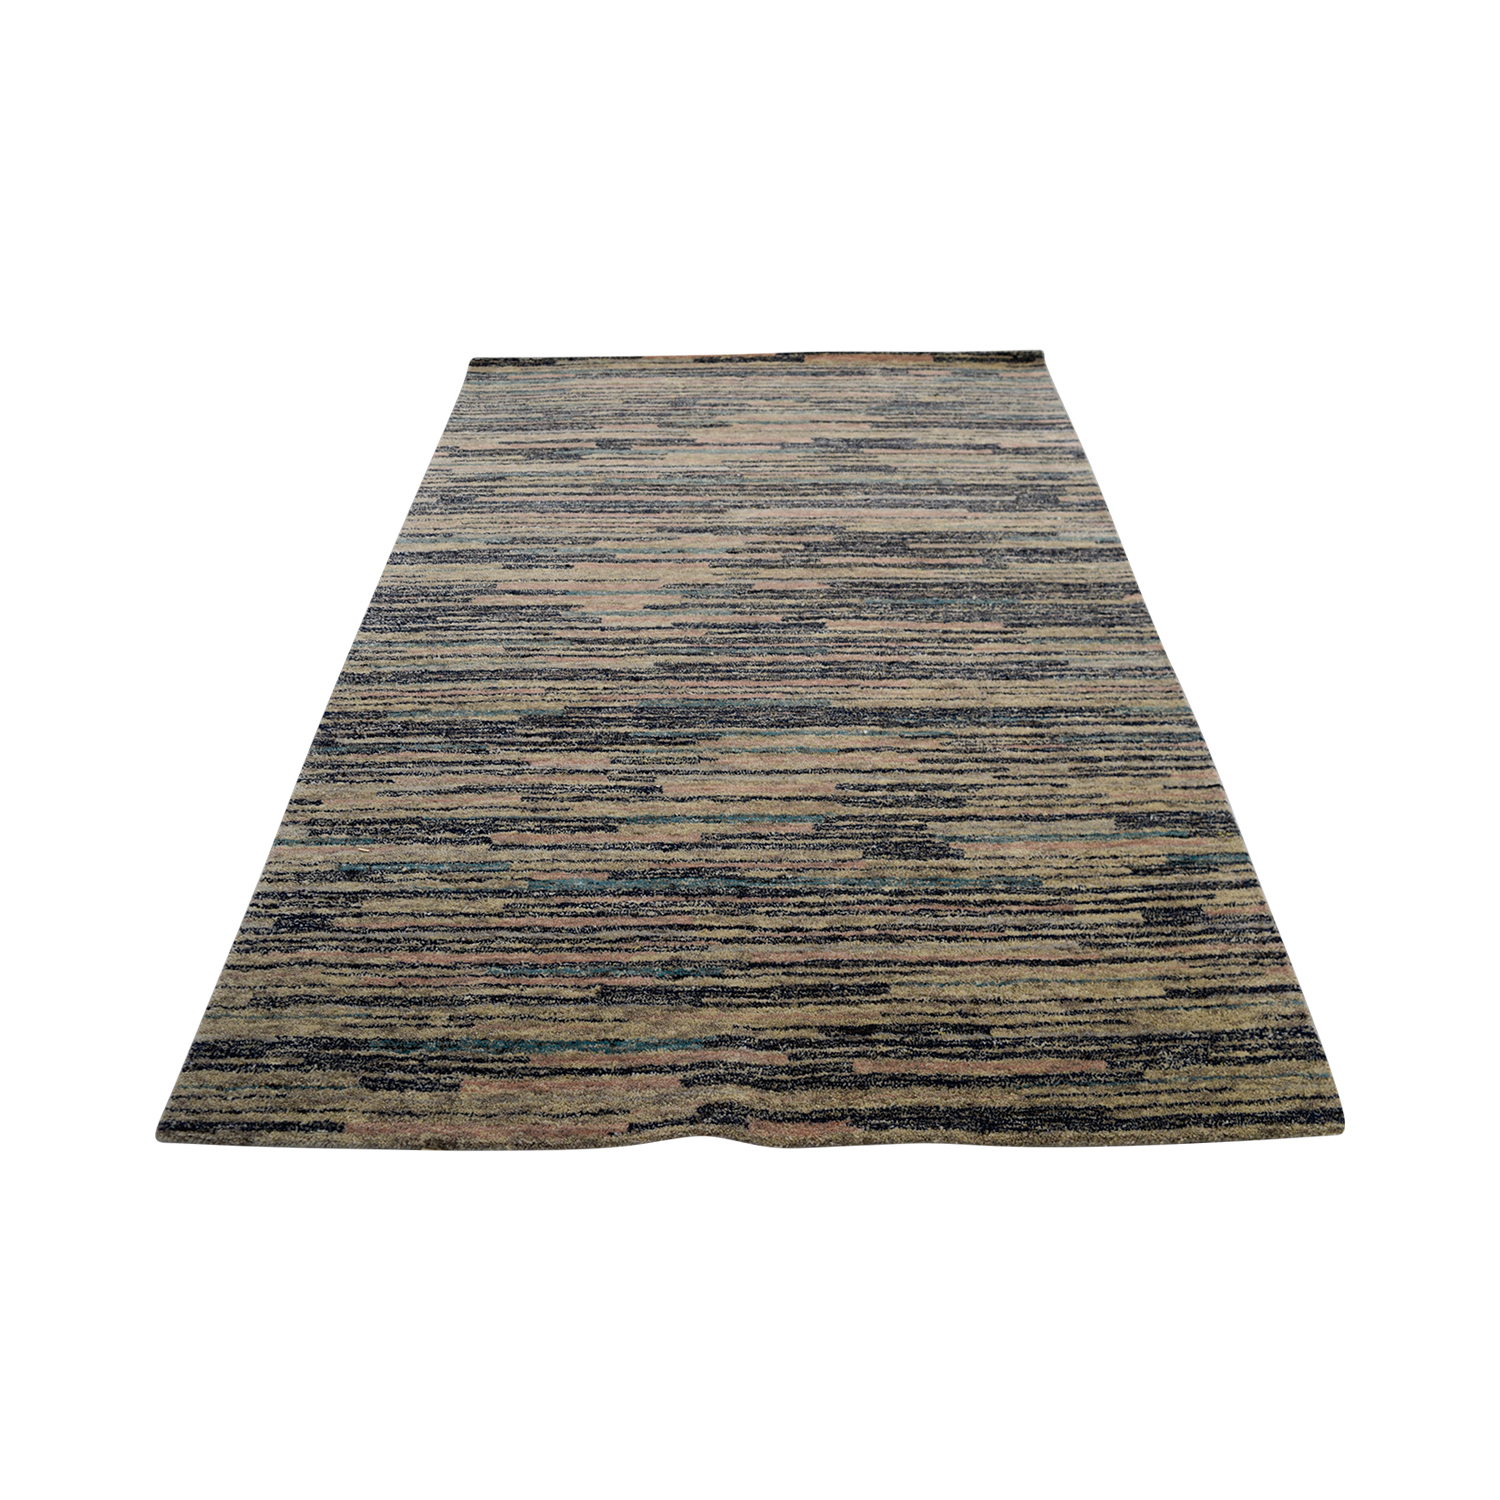 Obeetee Obeetee Multicolor Strips Rug used